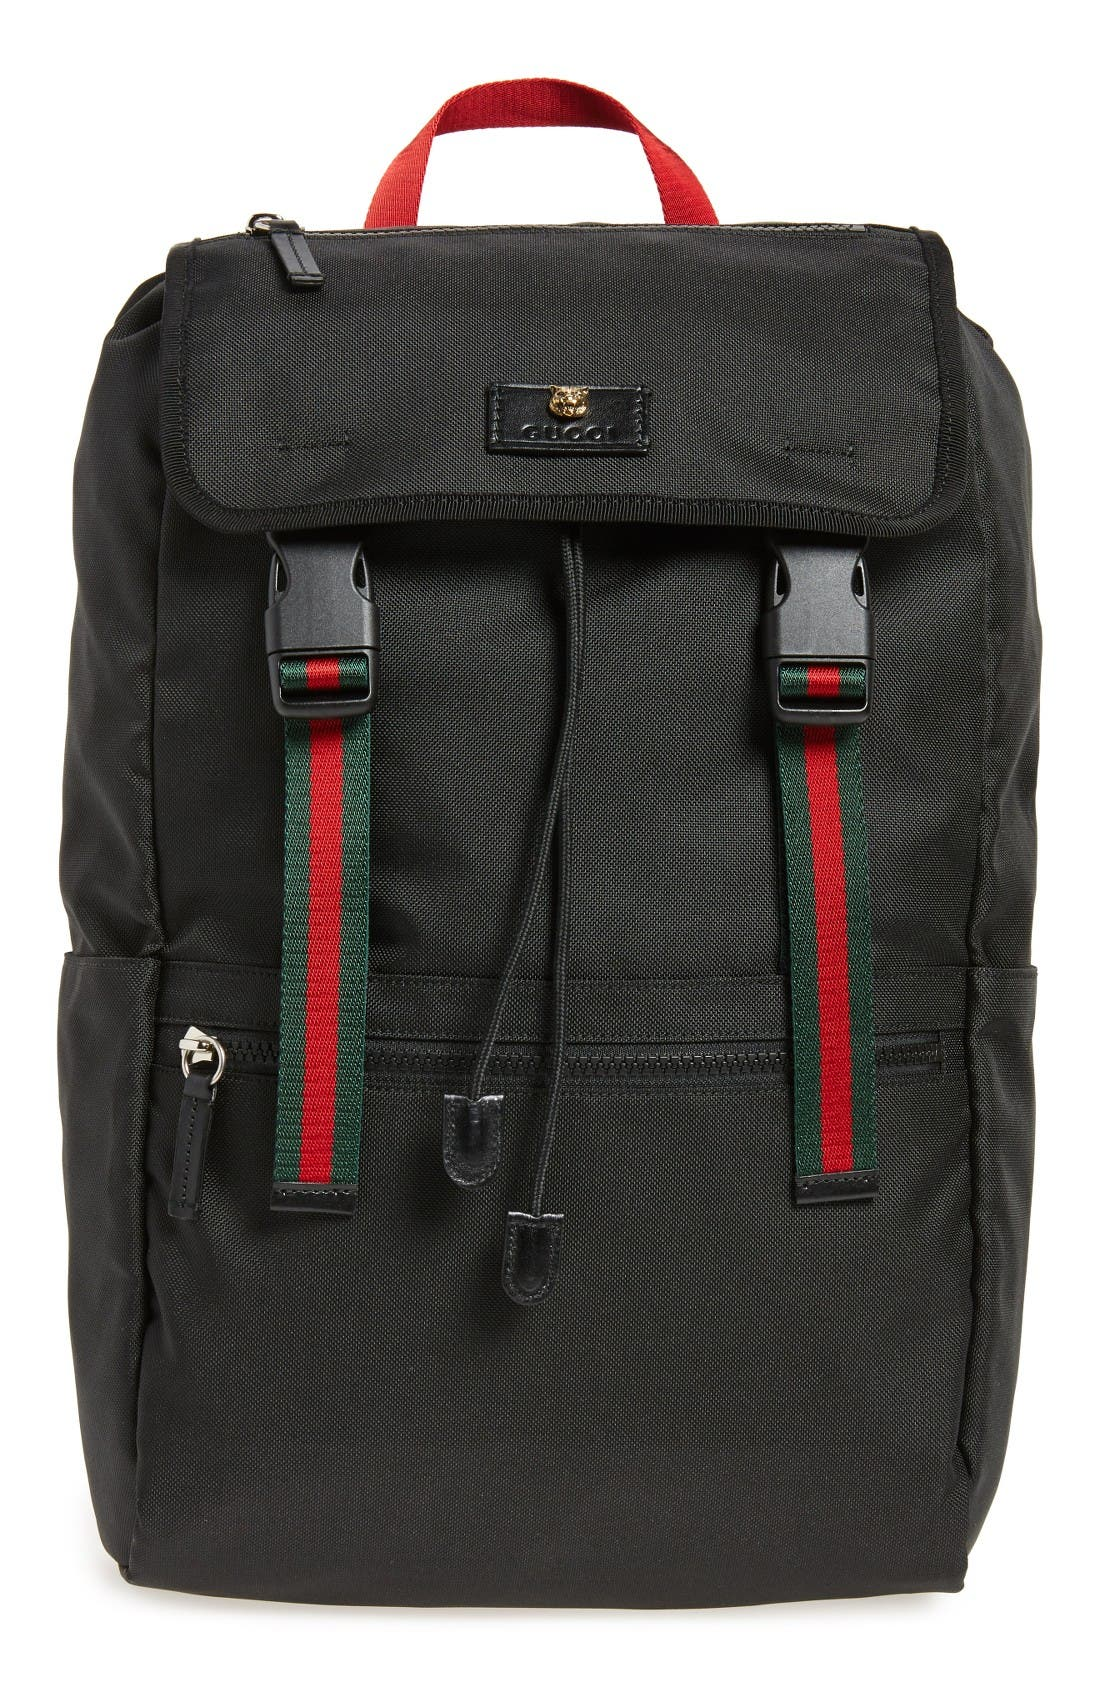 gucci bags at nordstrom. main image - gucci backpack bags at nordstrom t